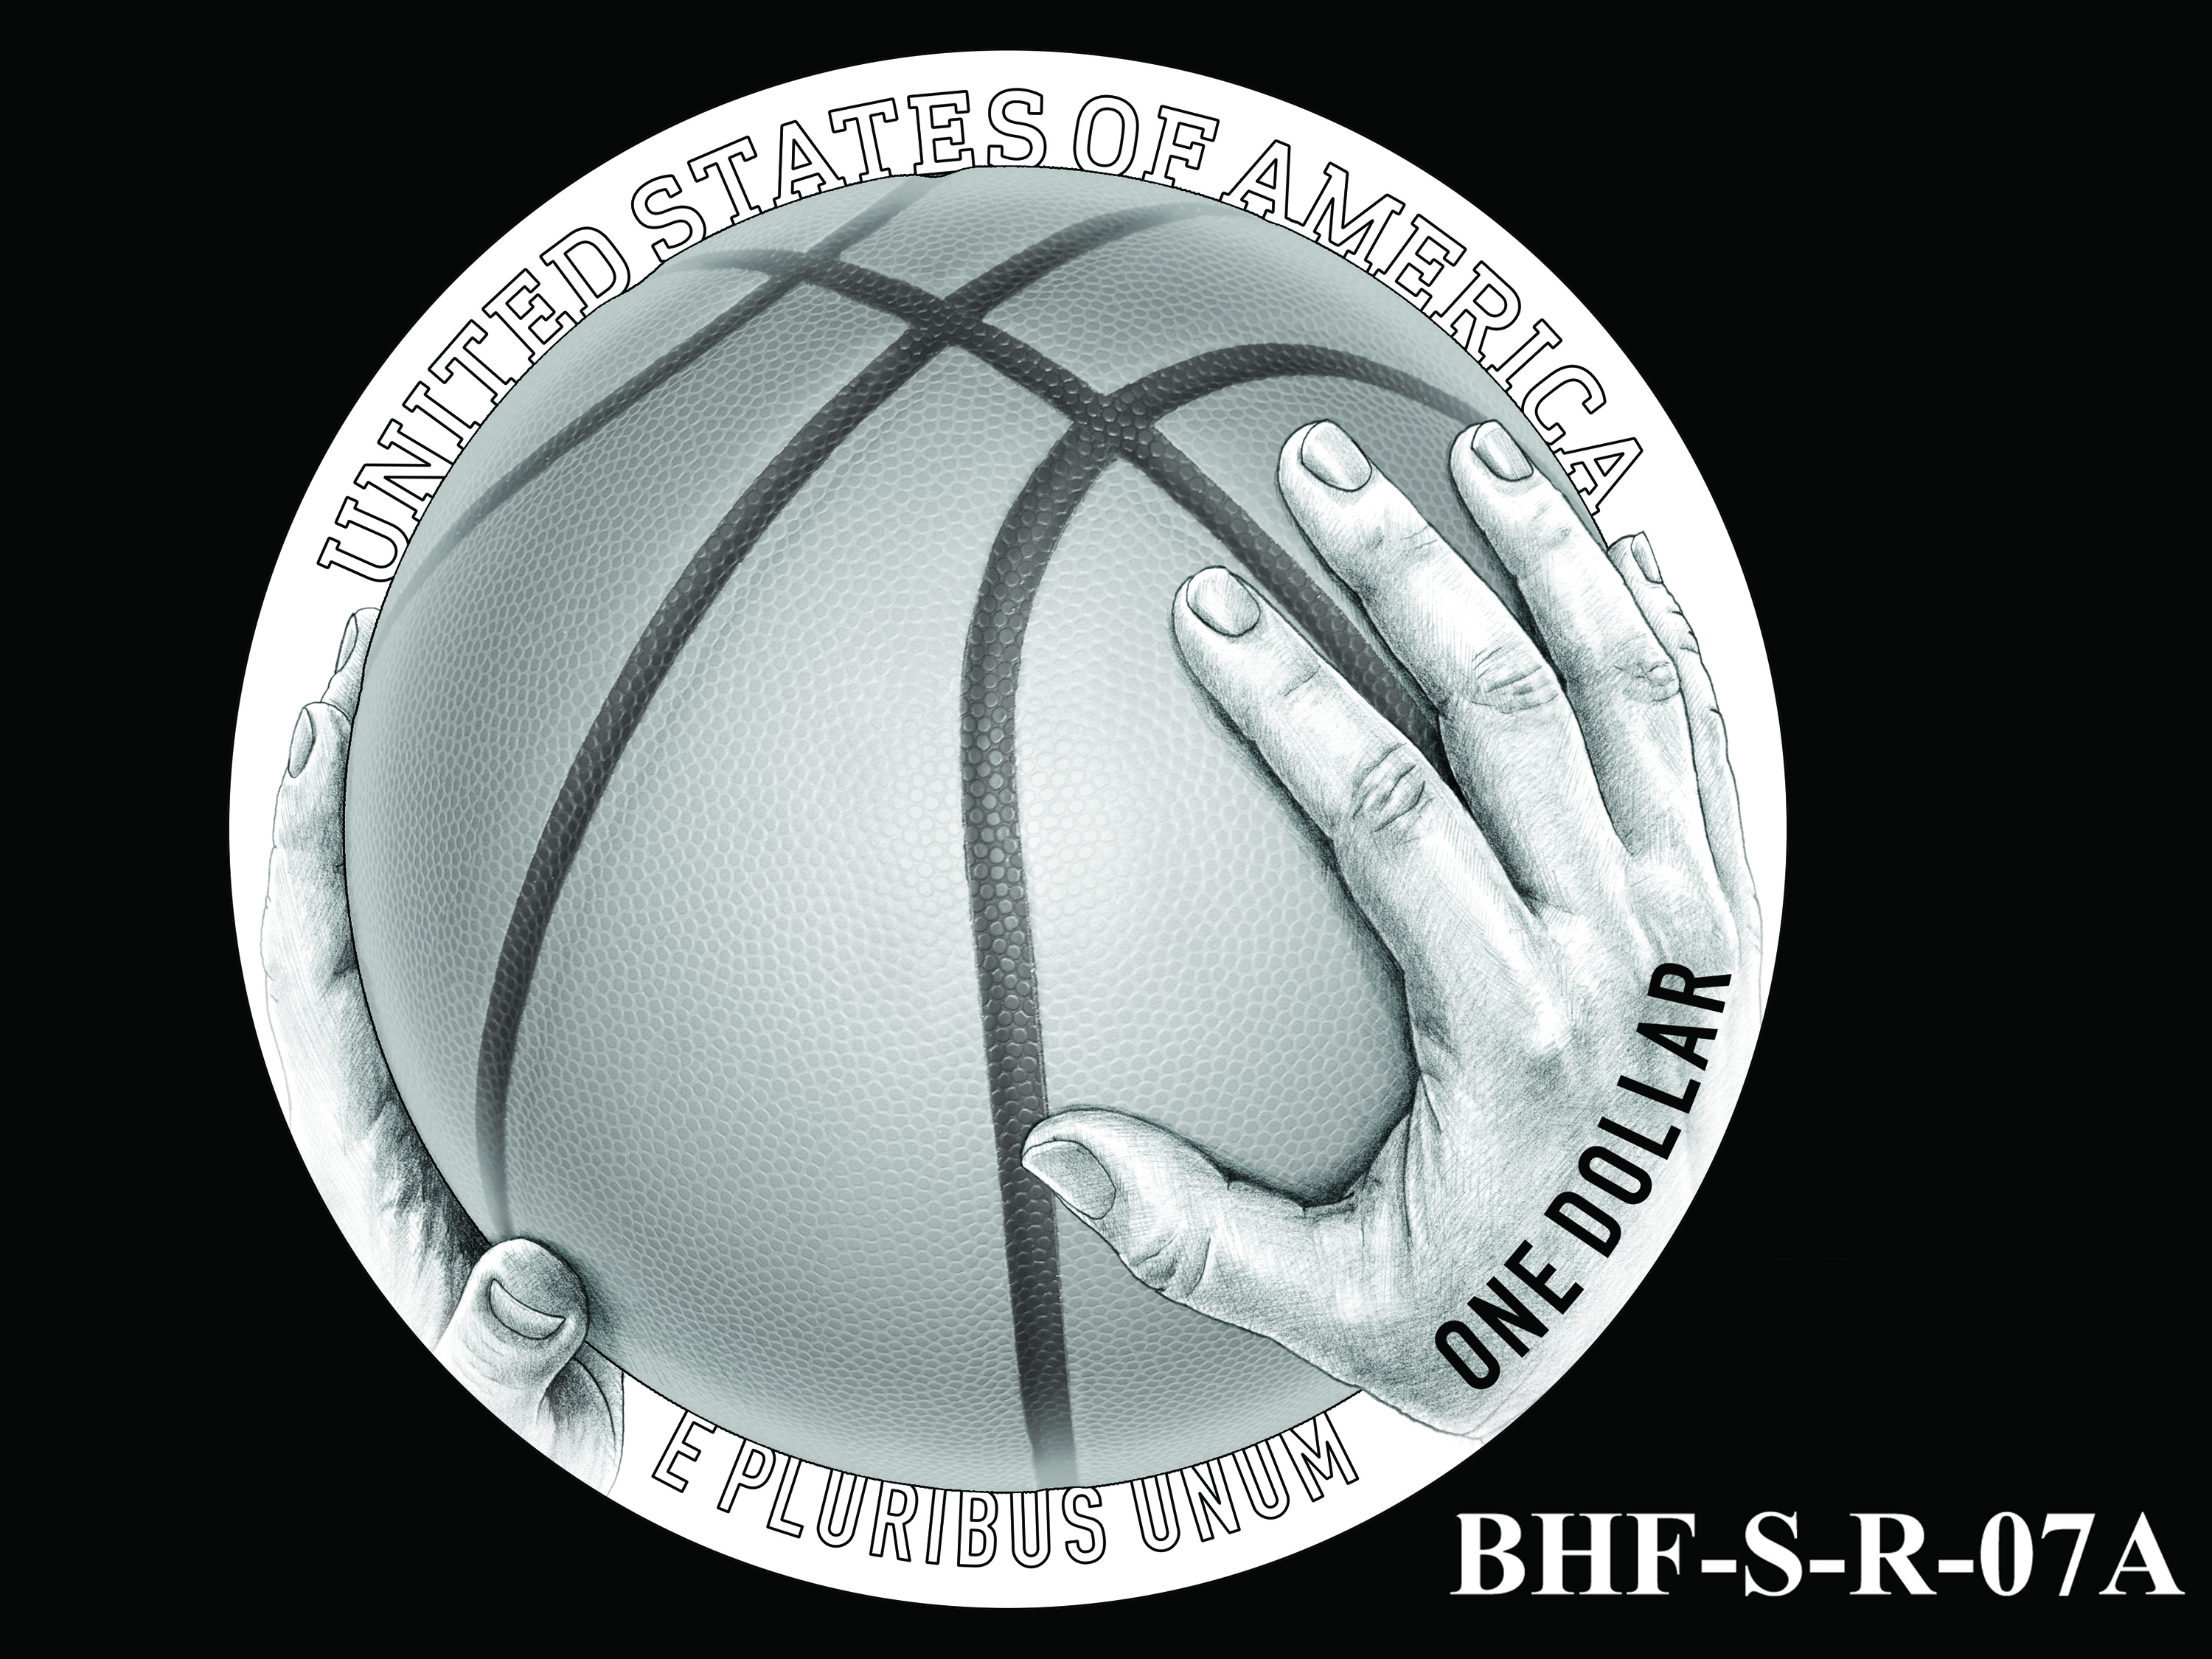 BHF-S-R-07A -- 2020 Basketball Hall of Fame Commemorative Coin Program - Silver Reverse